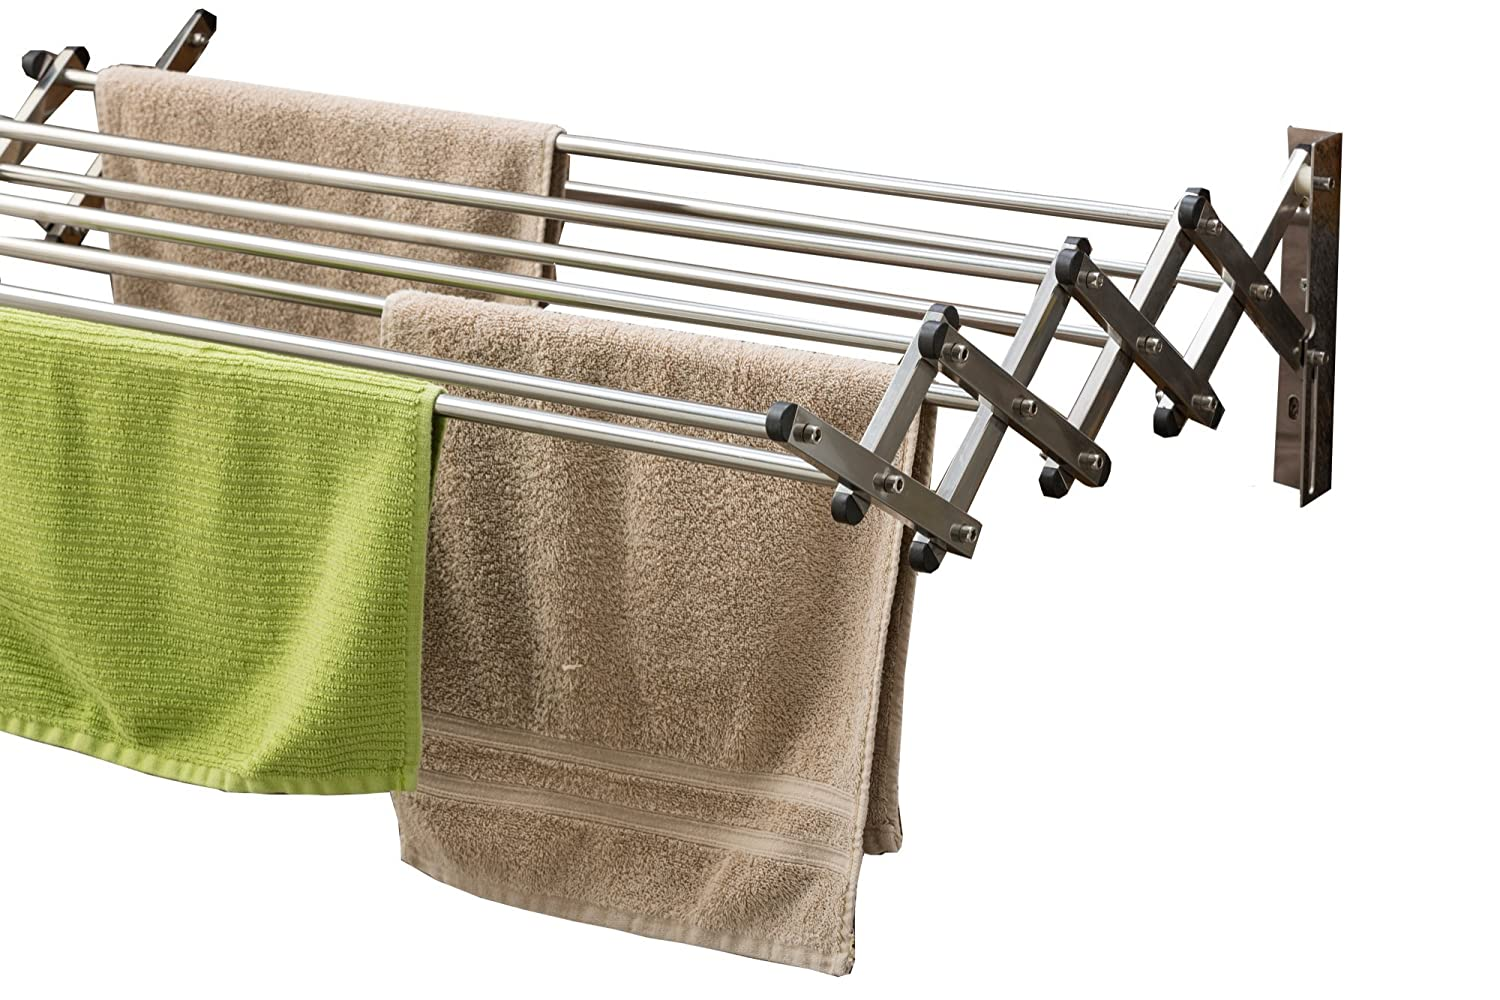 AERO W Racks Stainless Steel Wall Mounted Collapsible Laundry Folding Clothes Drying Rack 60 Pound Capacity 22.5 Linear Ft Clothesline